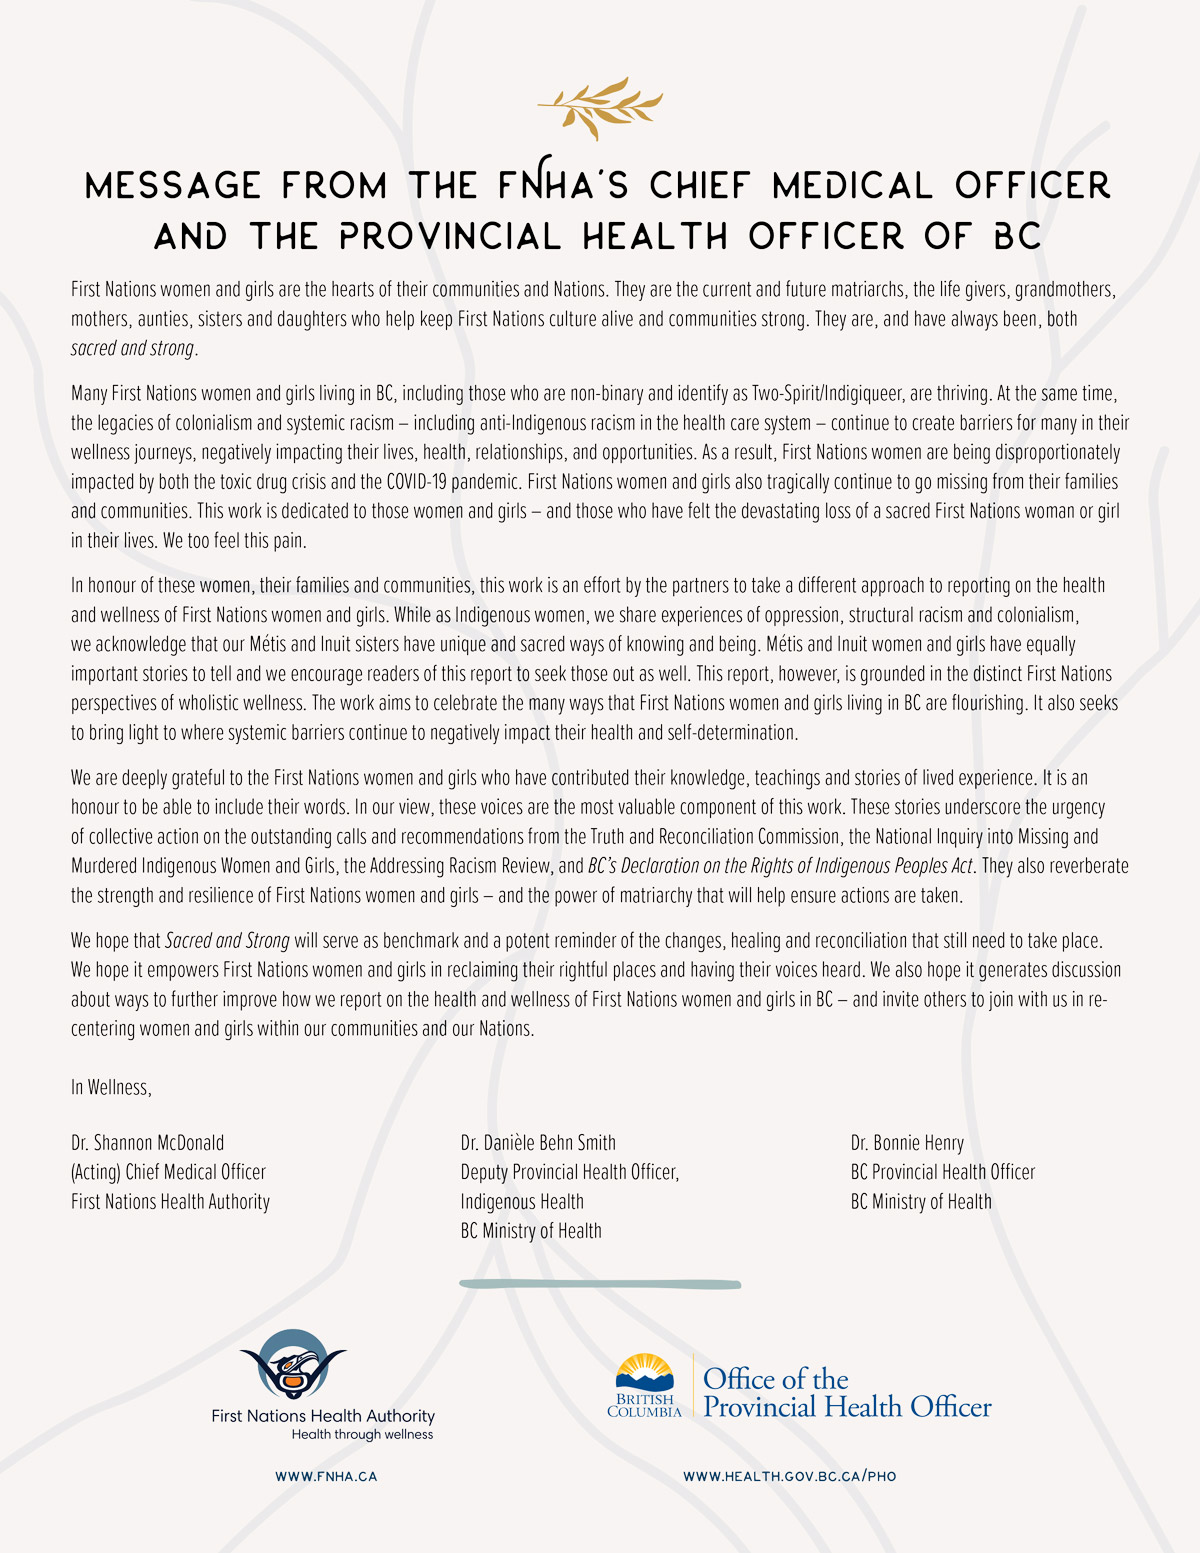 FNHA-PHO-Sacred-and-Strong-Letter.jpg